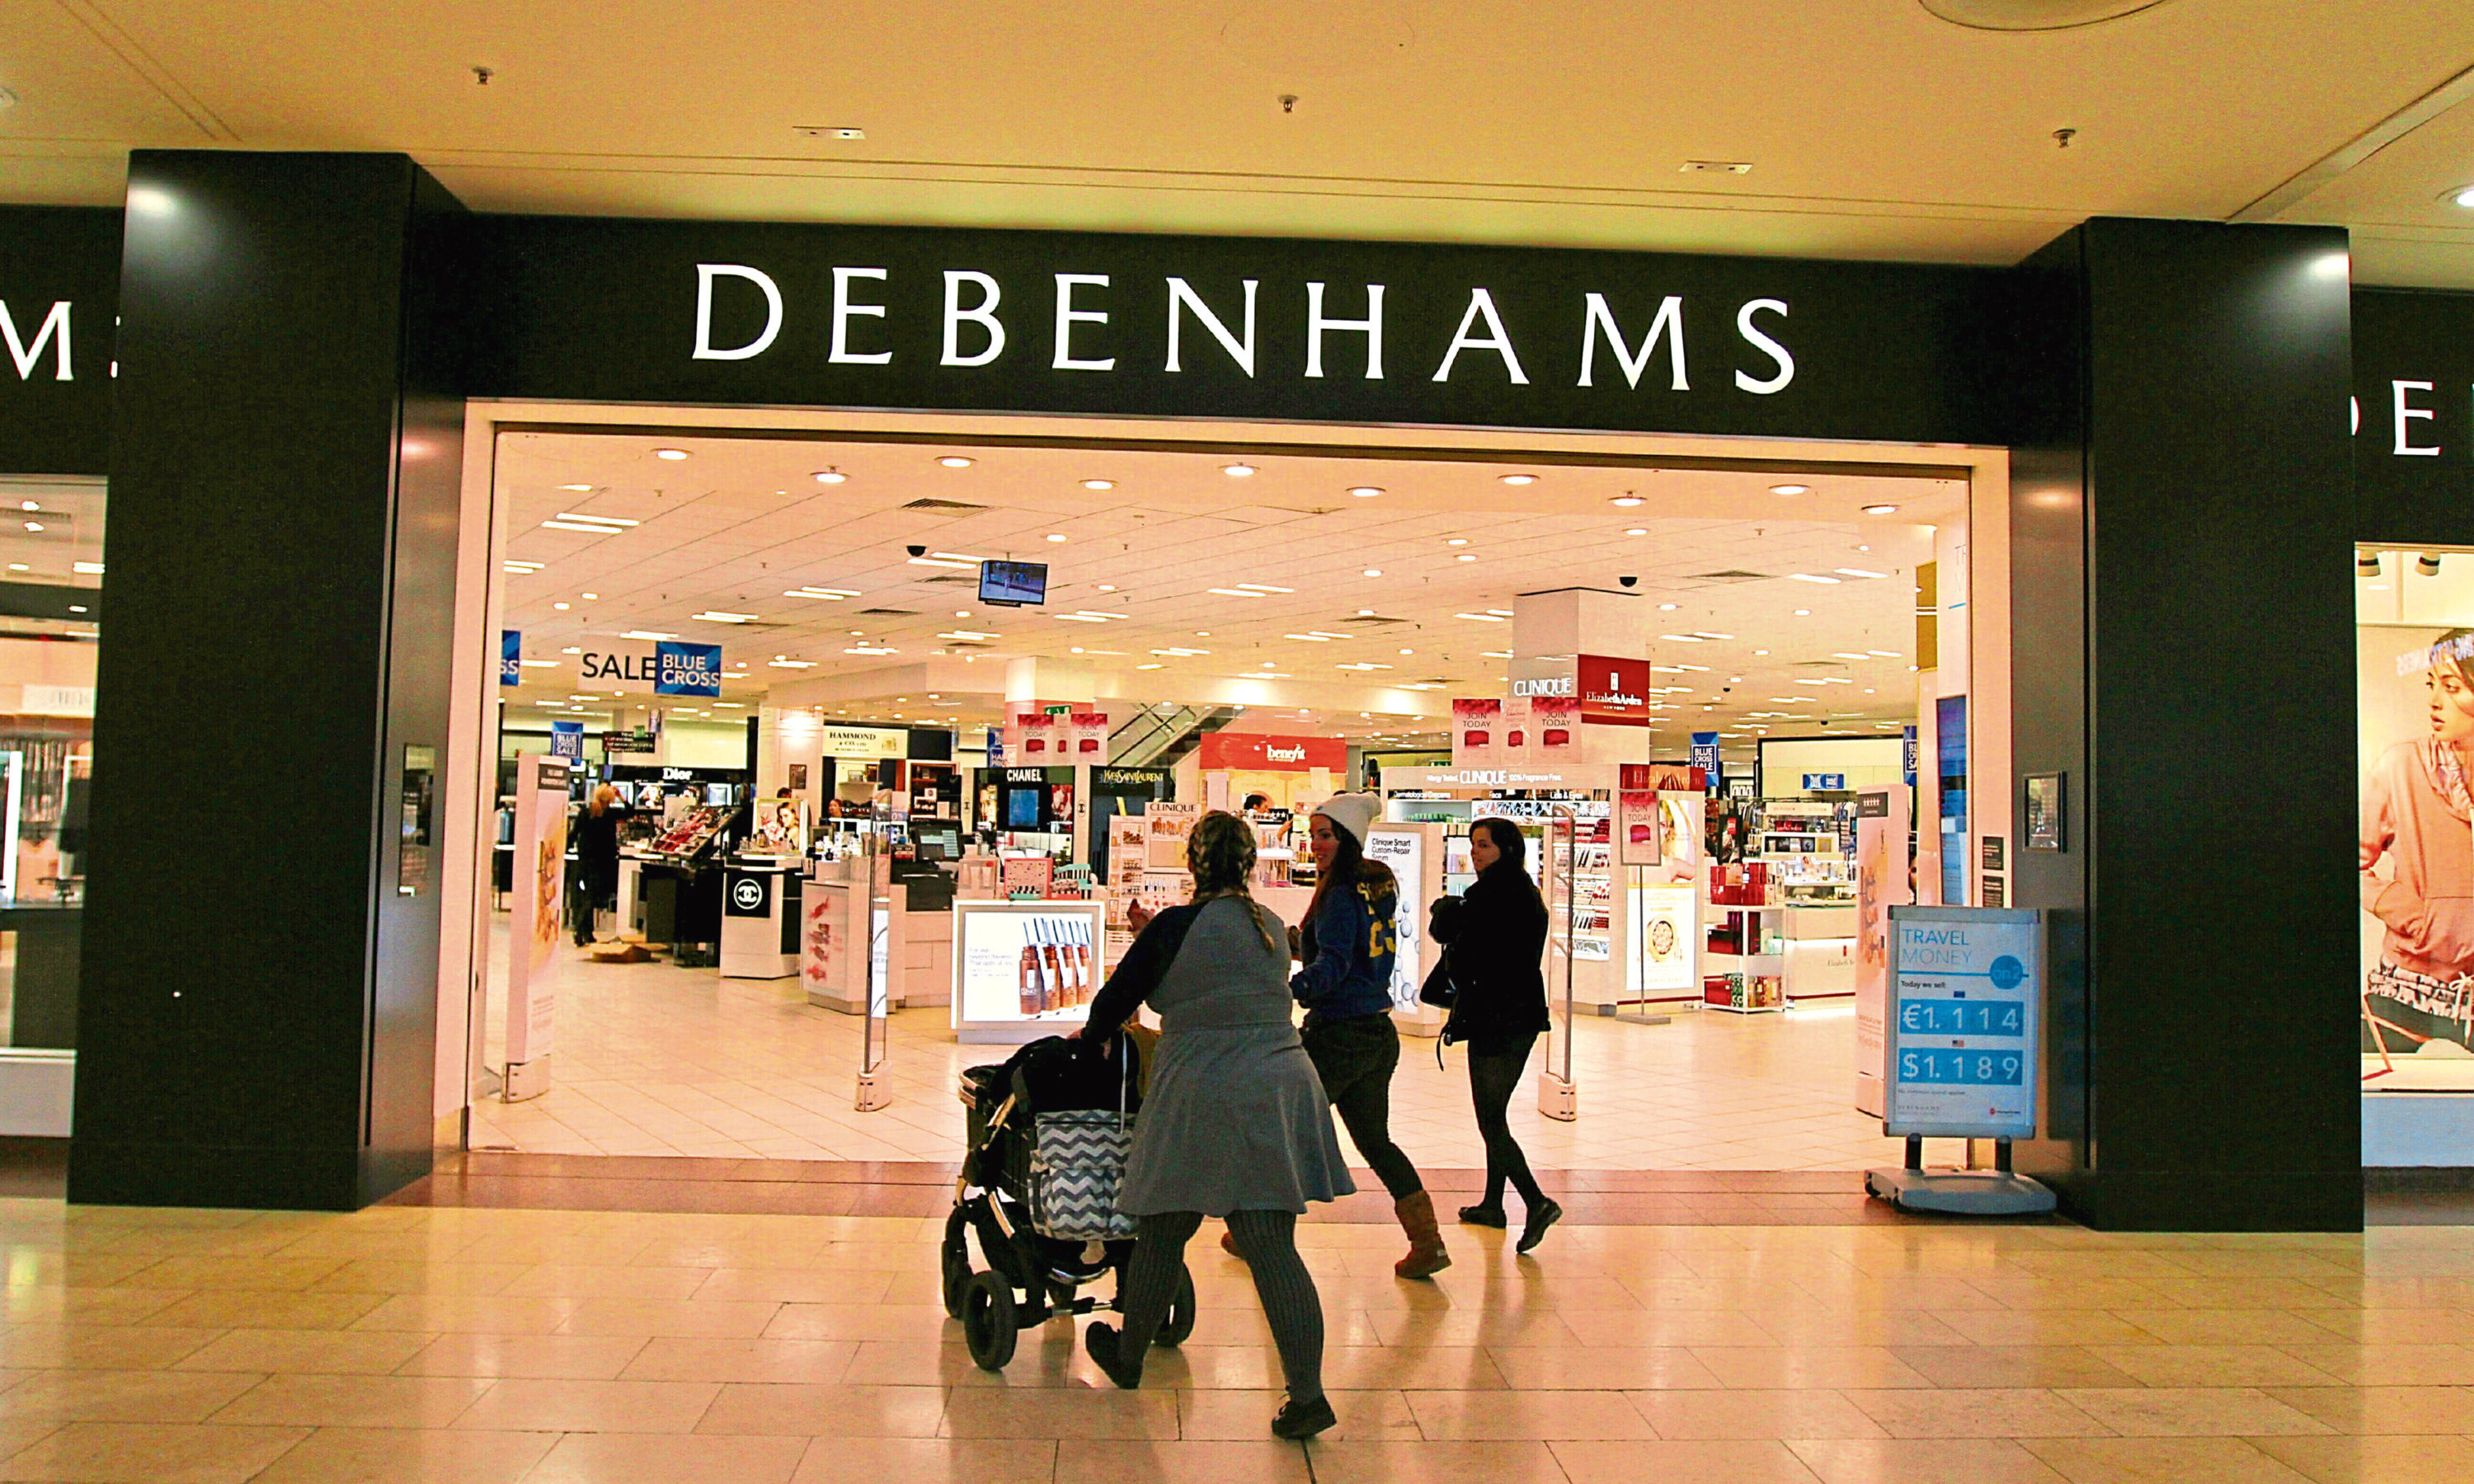 The Debenhams store in the Overgate. (Library image).